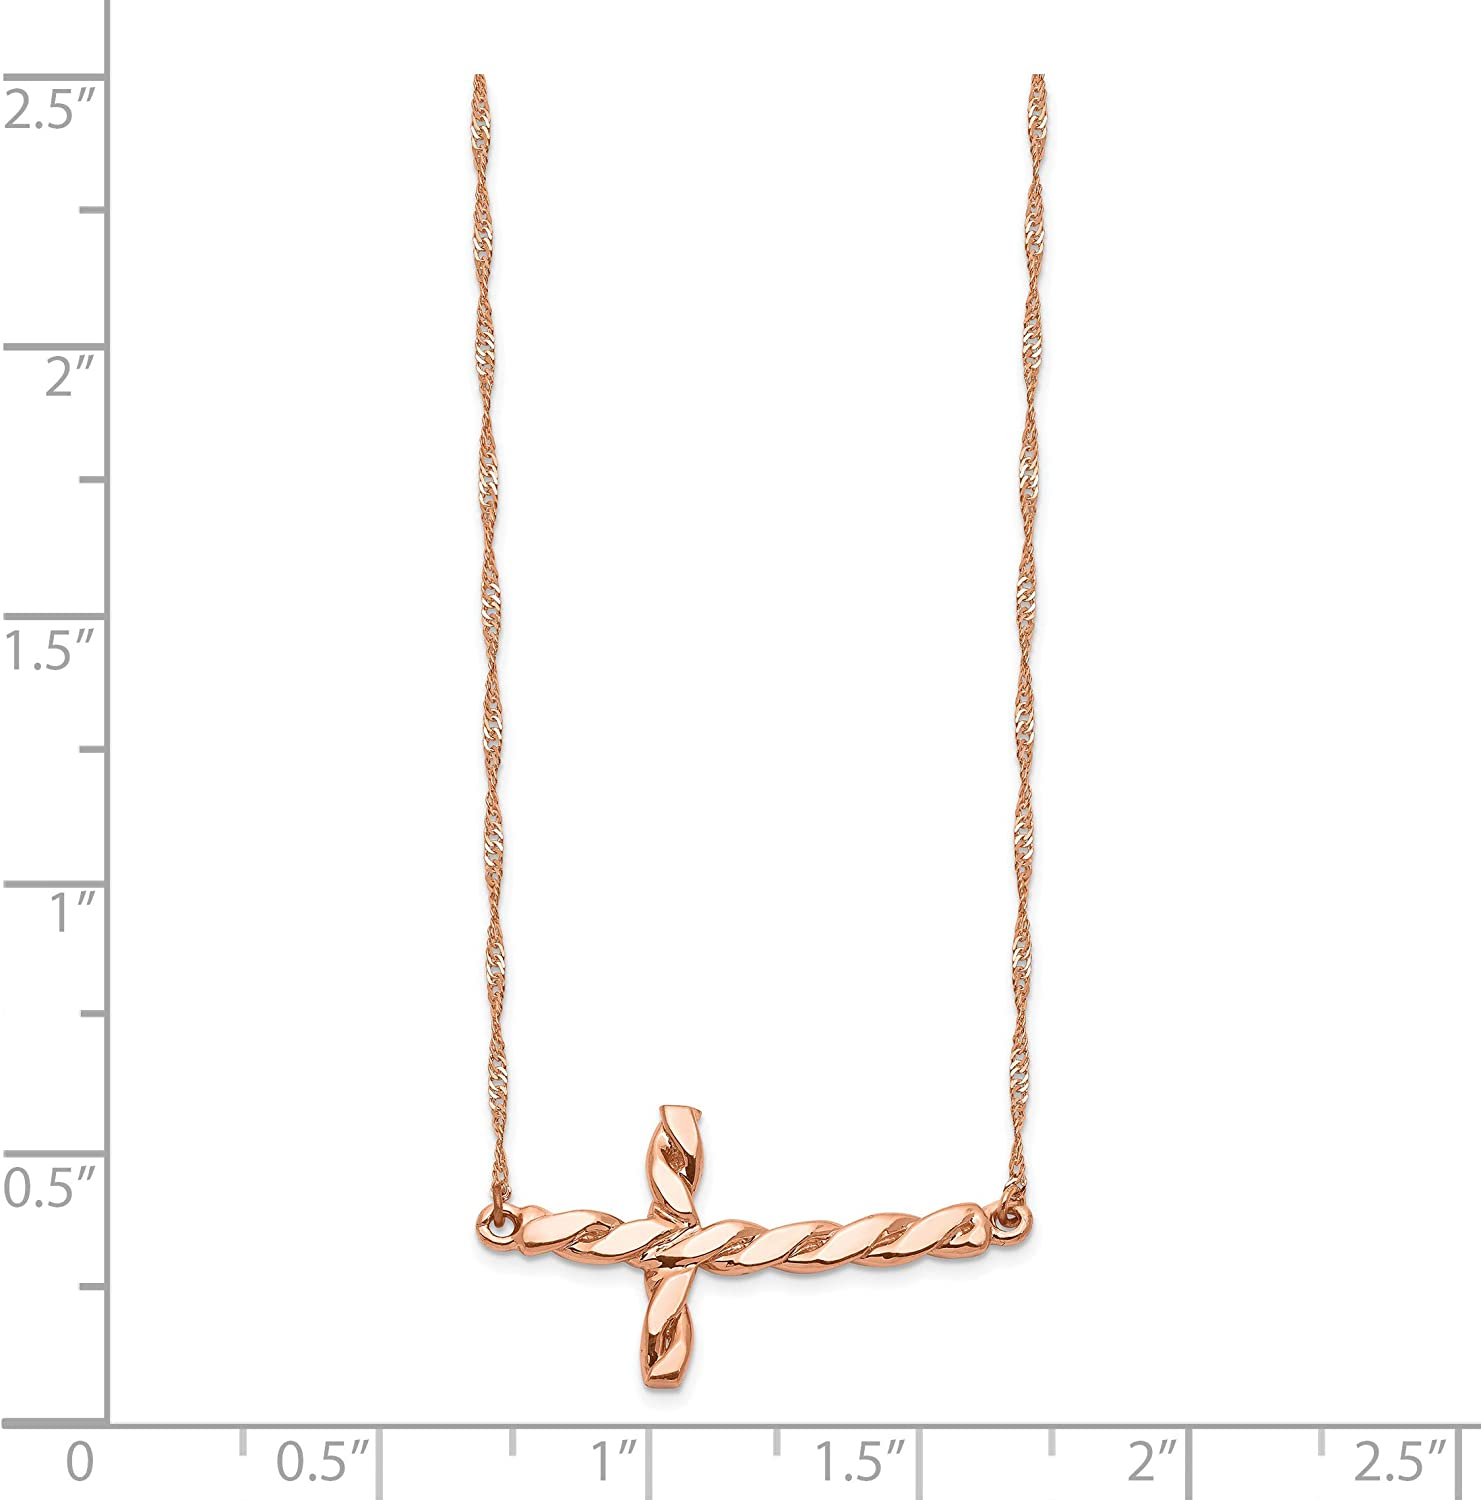 Solid 925 Sterling Silver Polished /& Satin Twisted Chain Slide Pendant Pendant